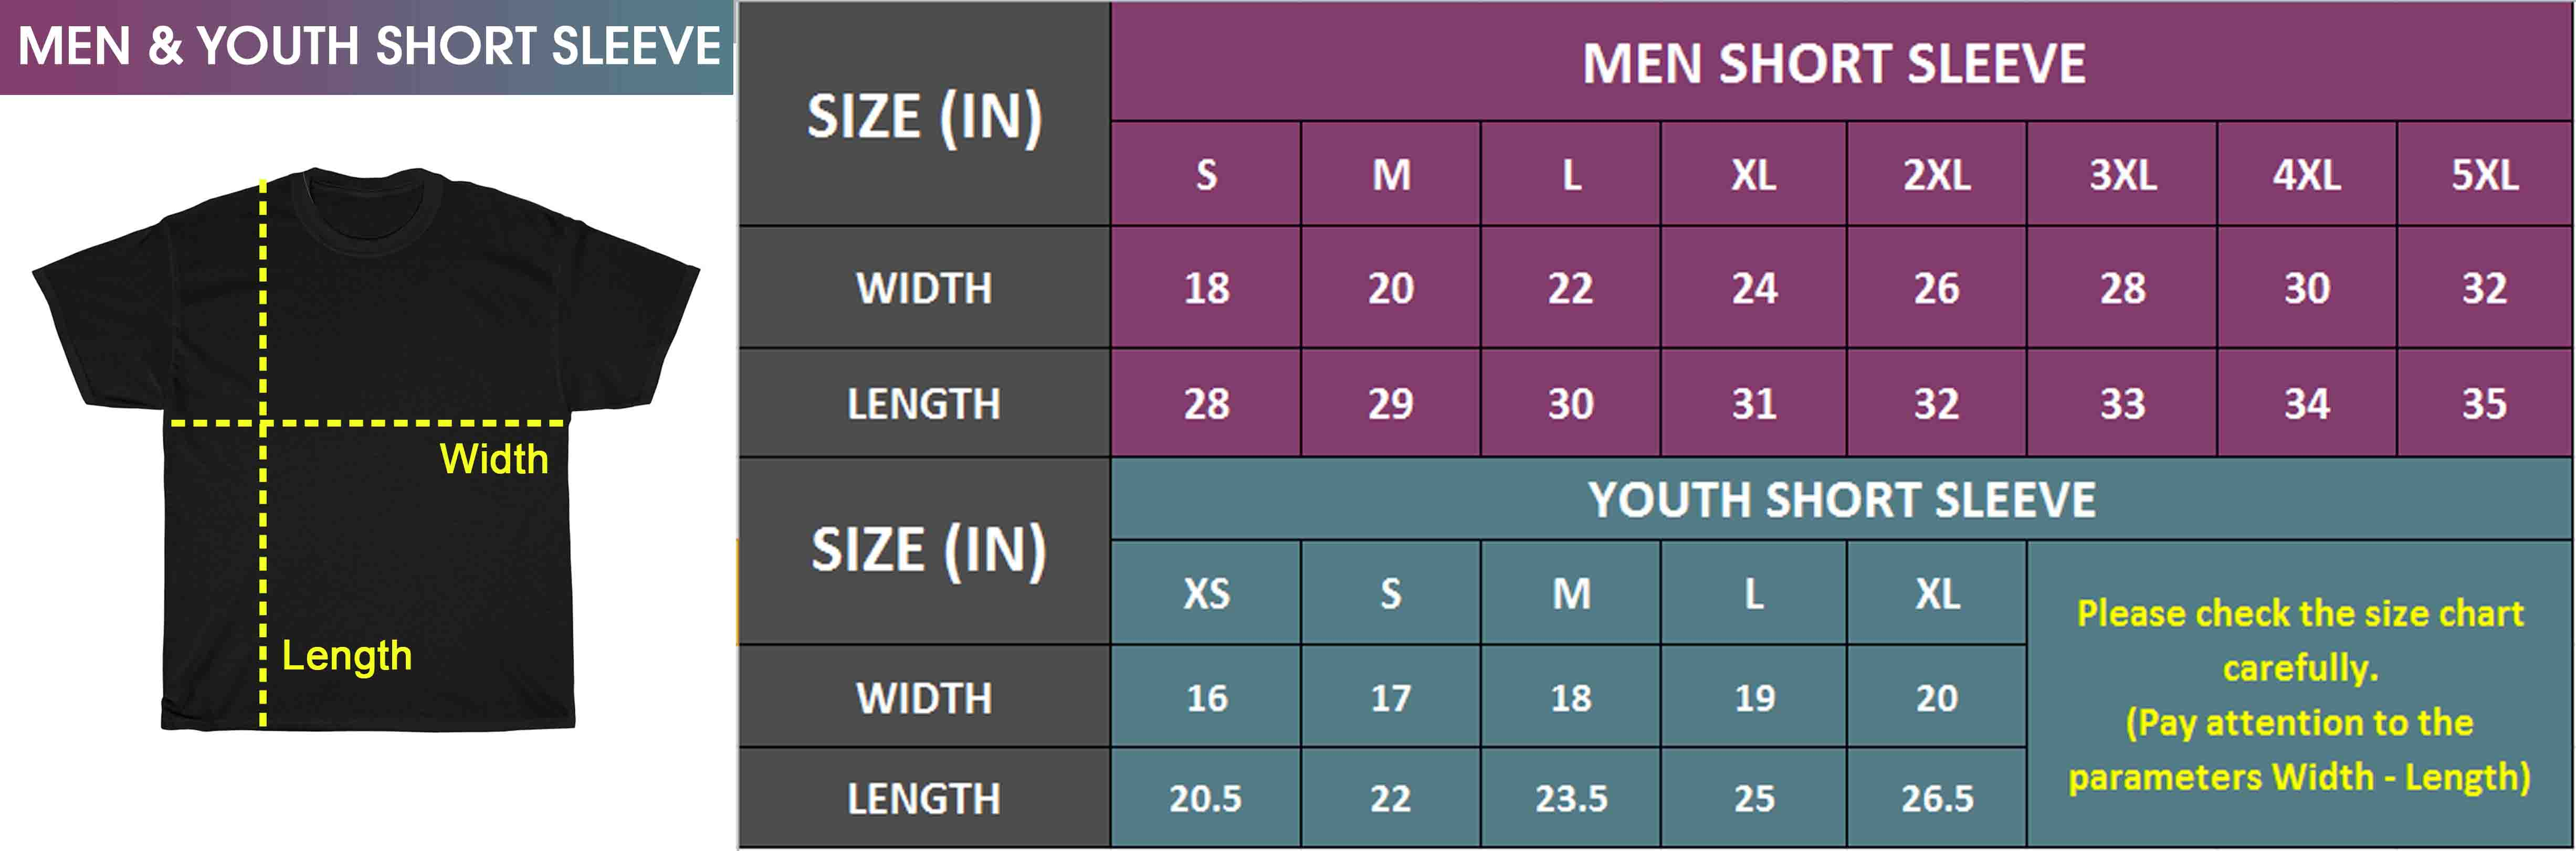 Men & Youth Short Sleeve | Size Chart